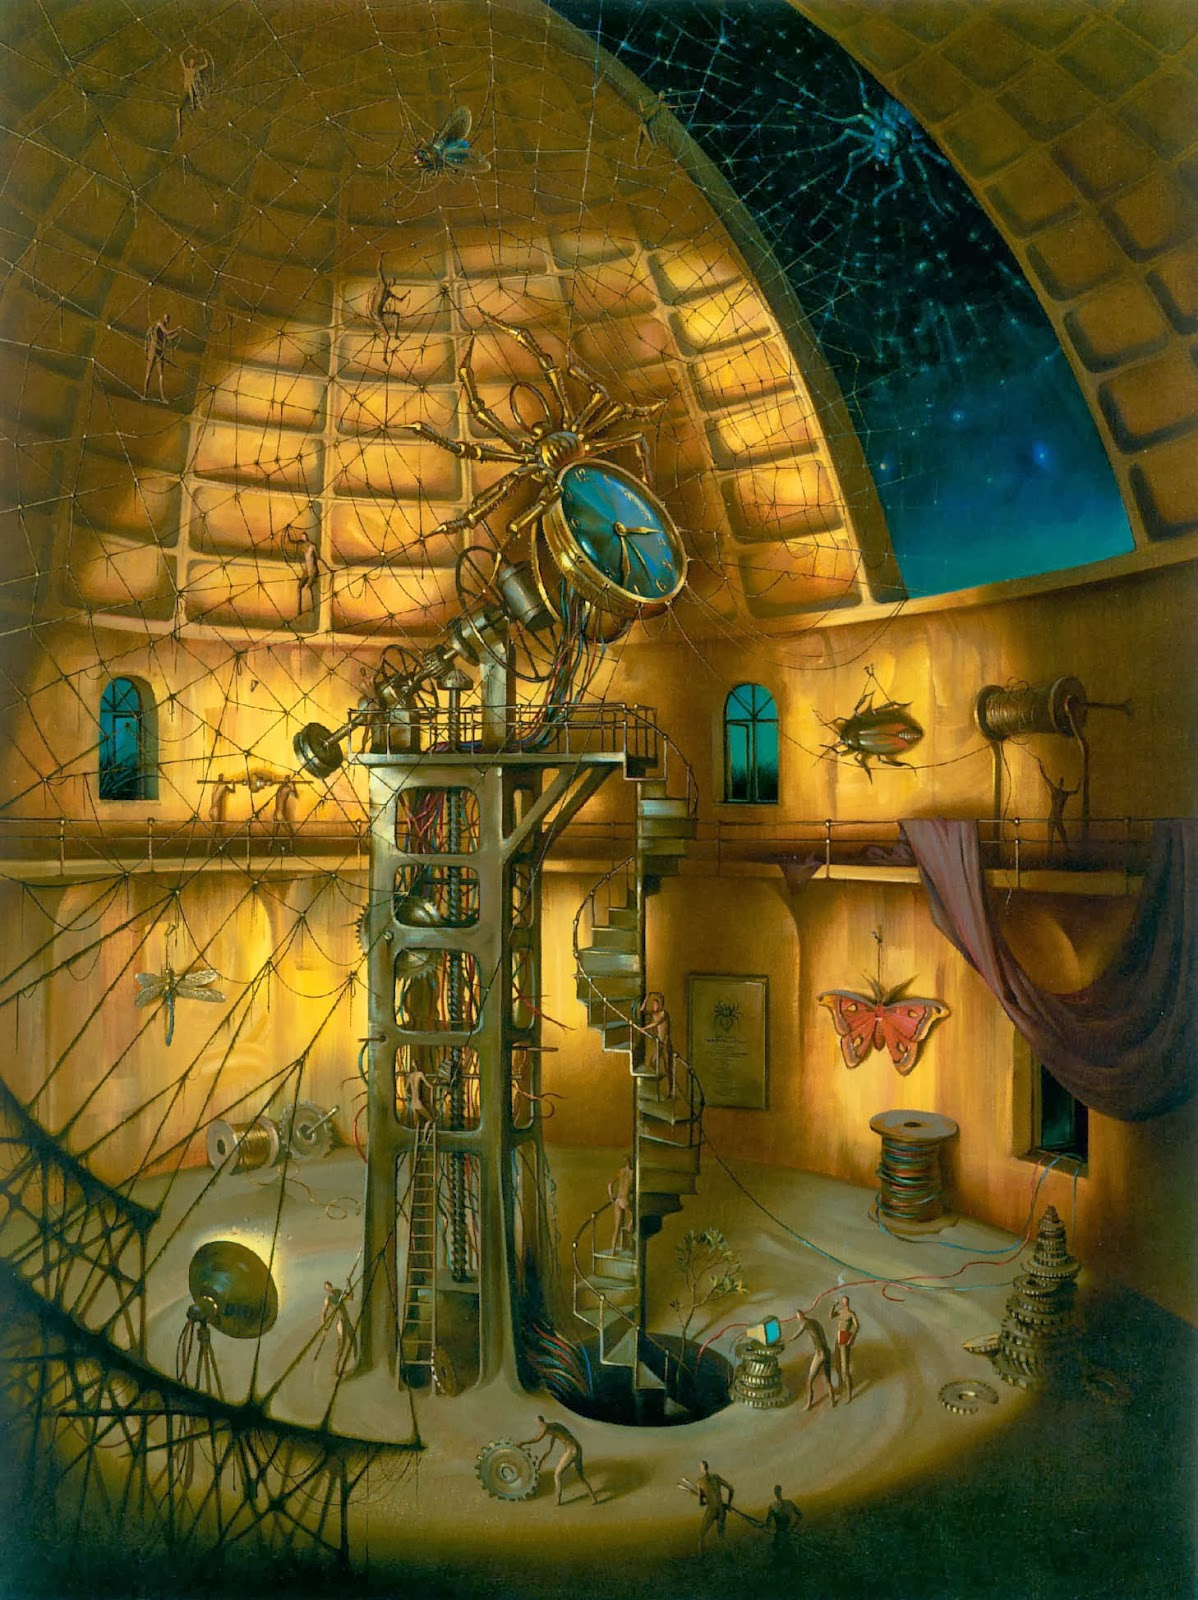 Russian Salvador Dali: Surrealistic paintings by Vladimir Kush - 24